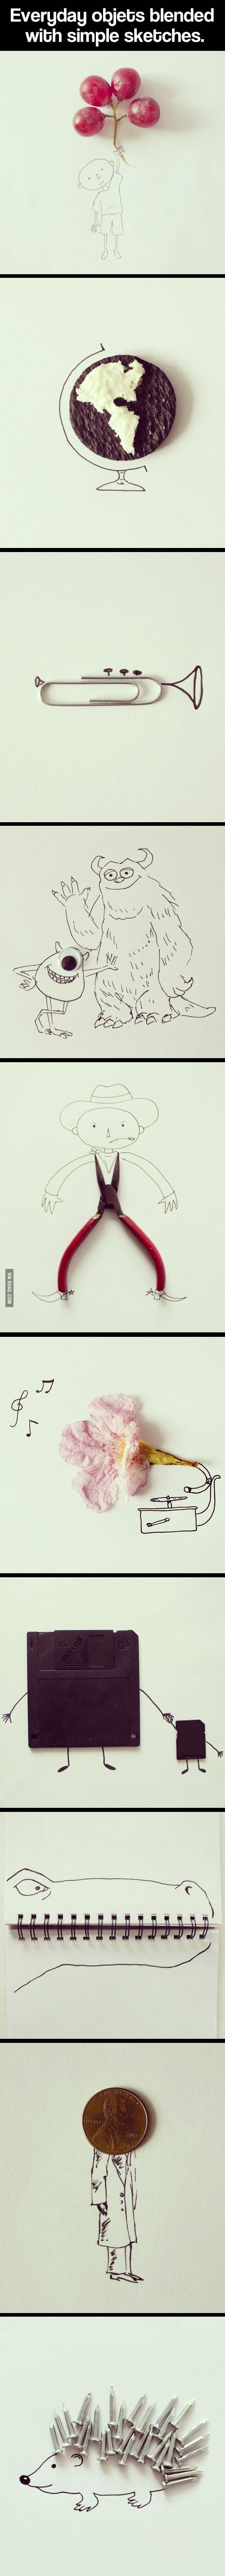 Normal things made into beautiful things